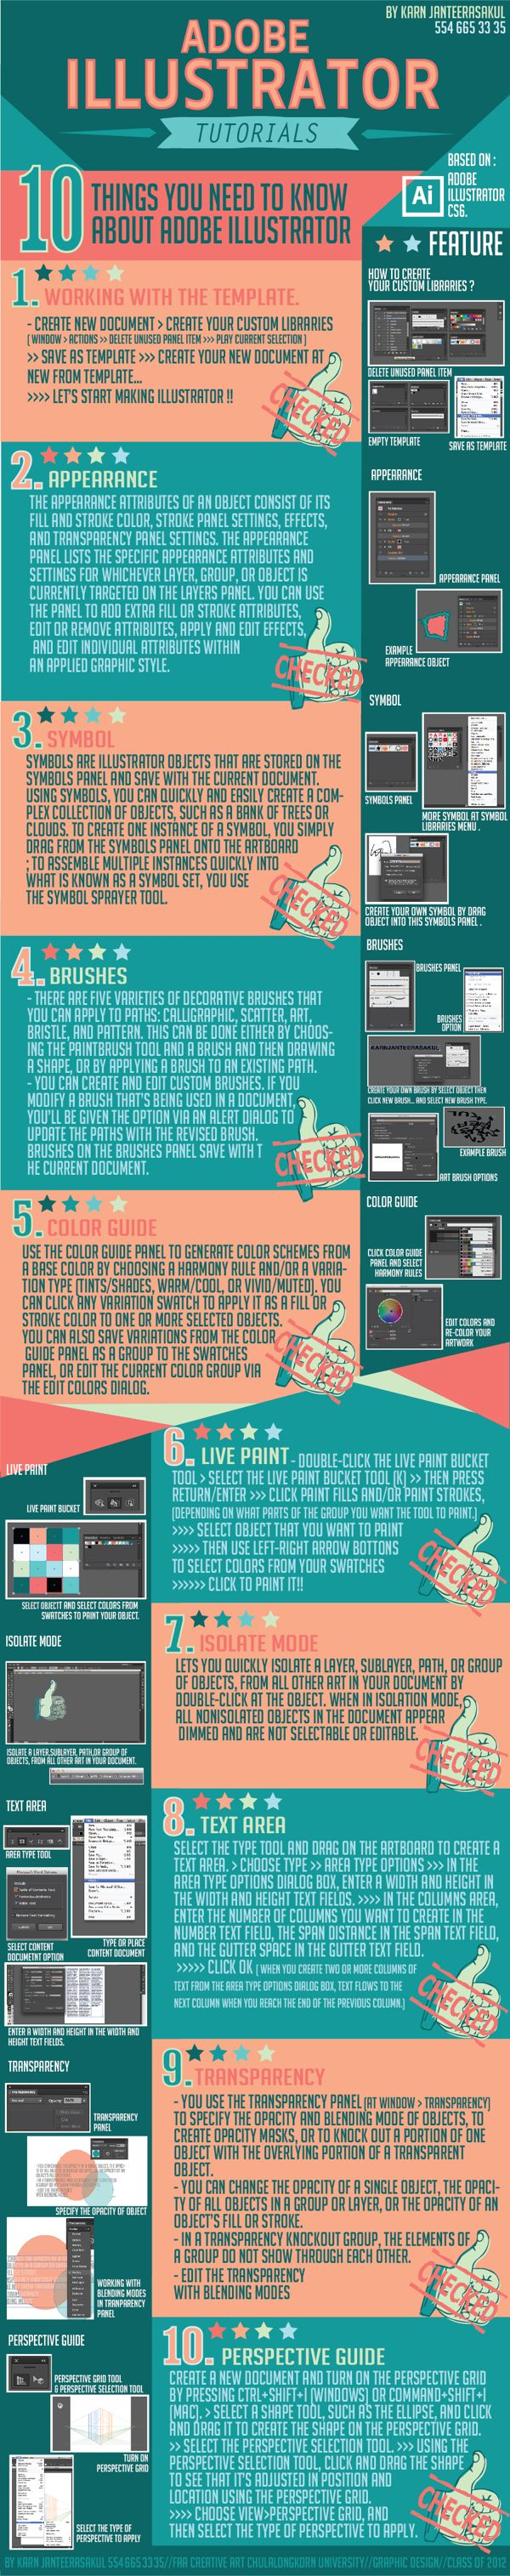 Adobe illustrator Tutorials Infographic by Karn ...